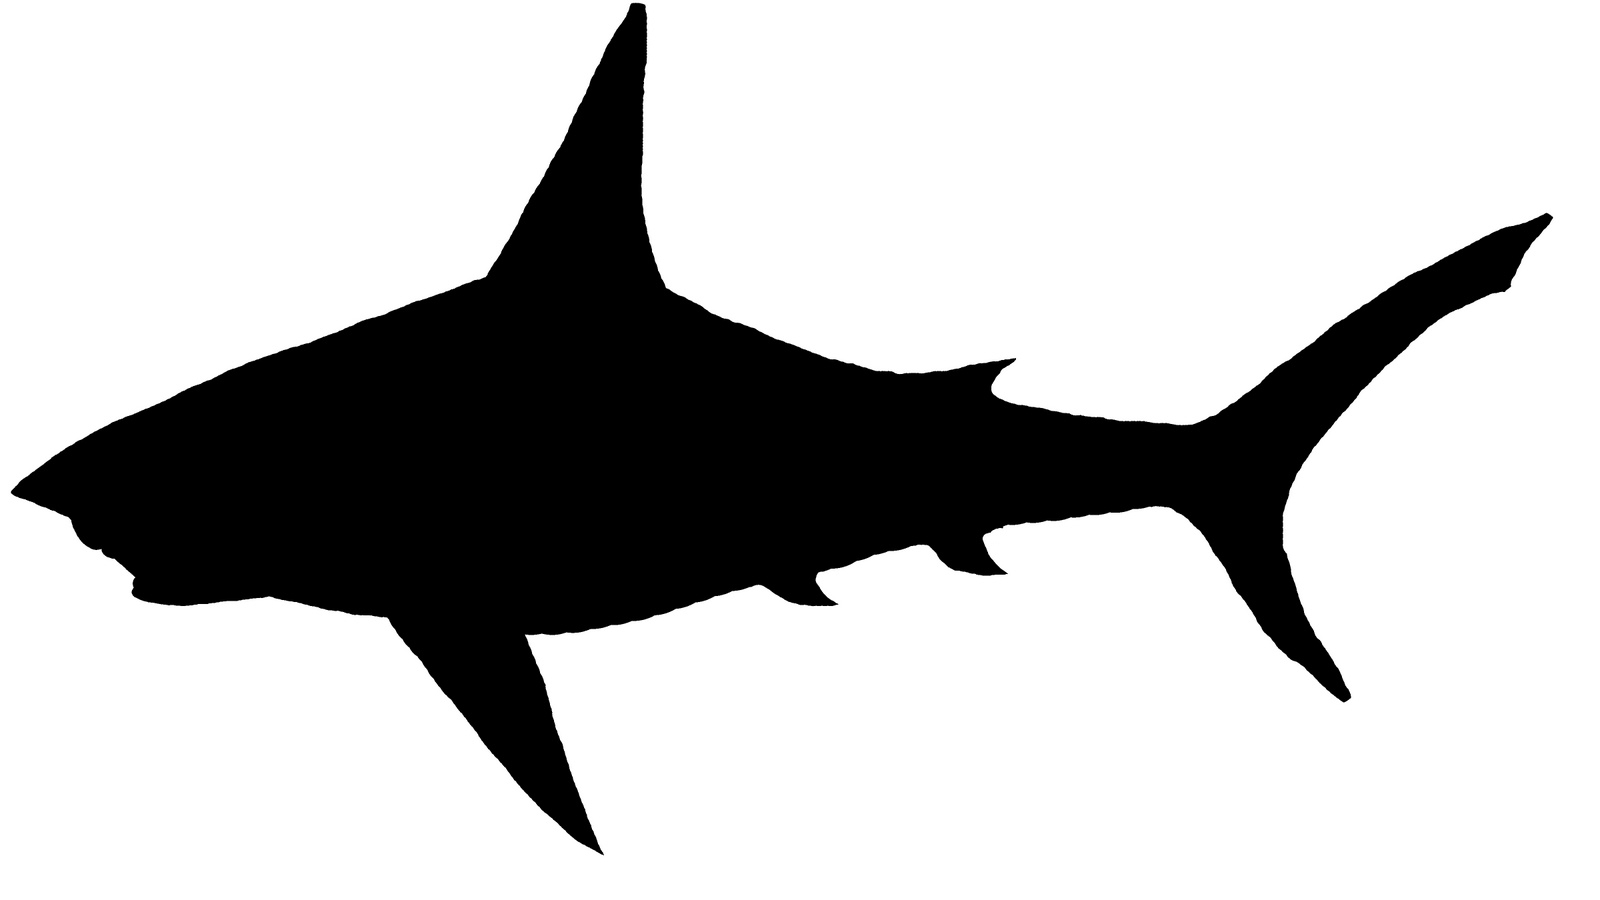 Shark Sil | Free Images at Clker.com - vector clip art online, royalty ...